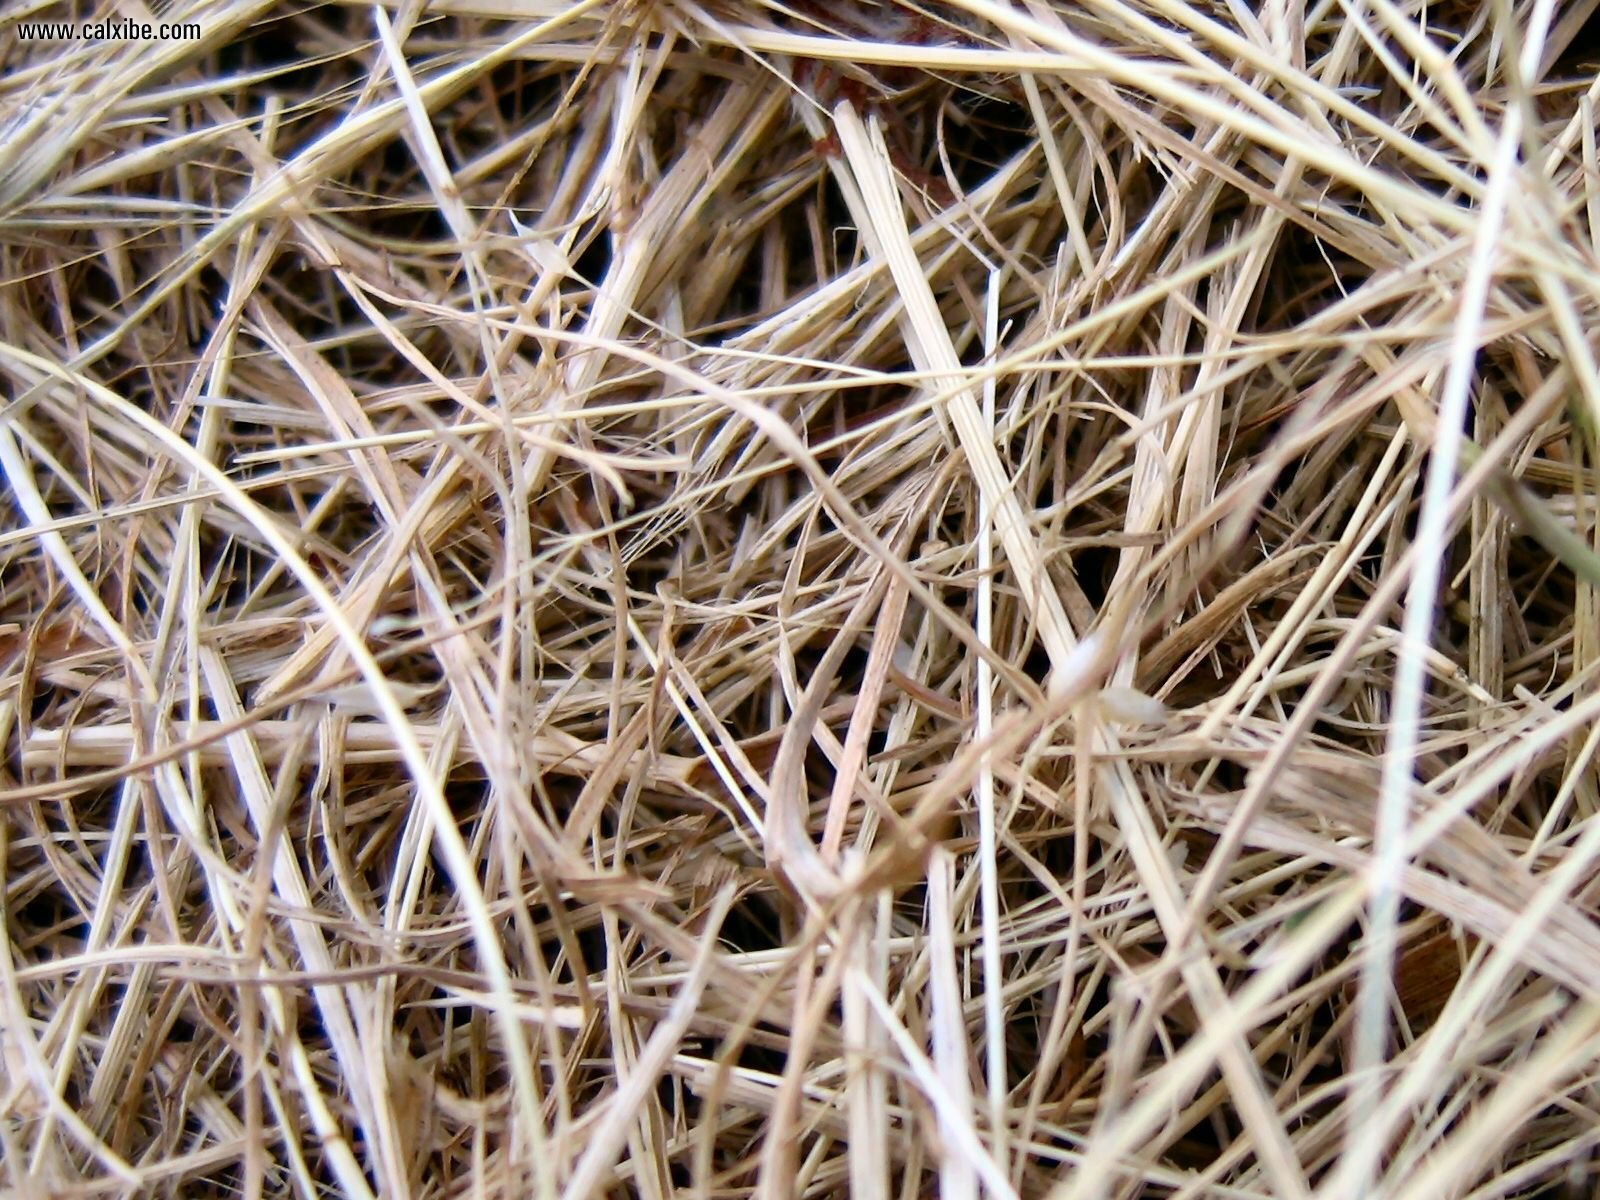 Development: Dried Grass, picture nr. 13291